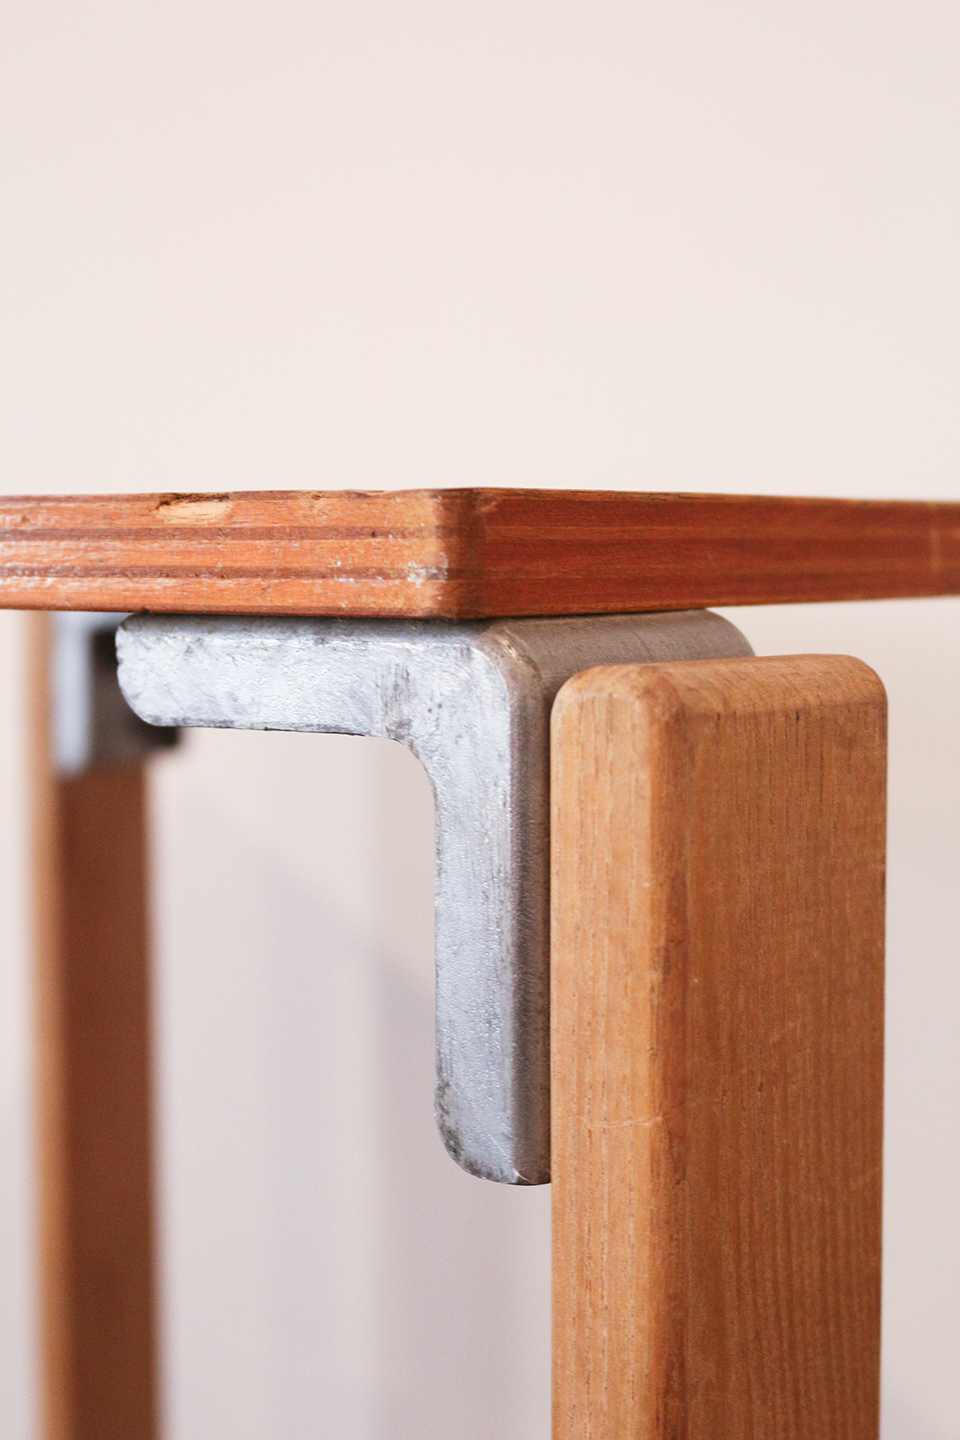 Atelier Jespers Forgotten Furniture By Candilis And Blomstedt